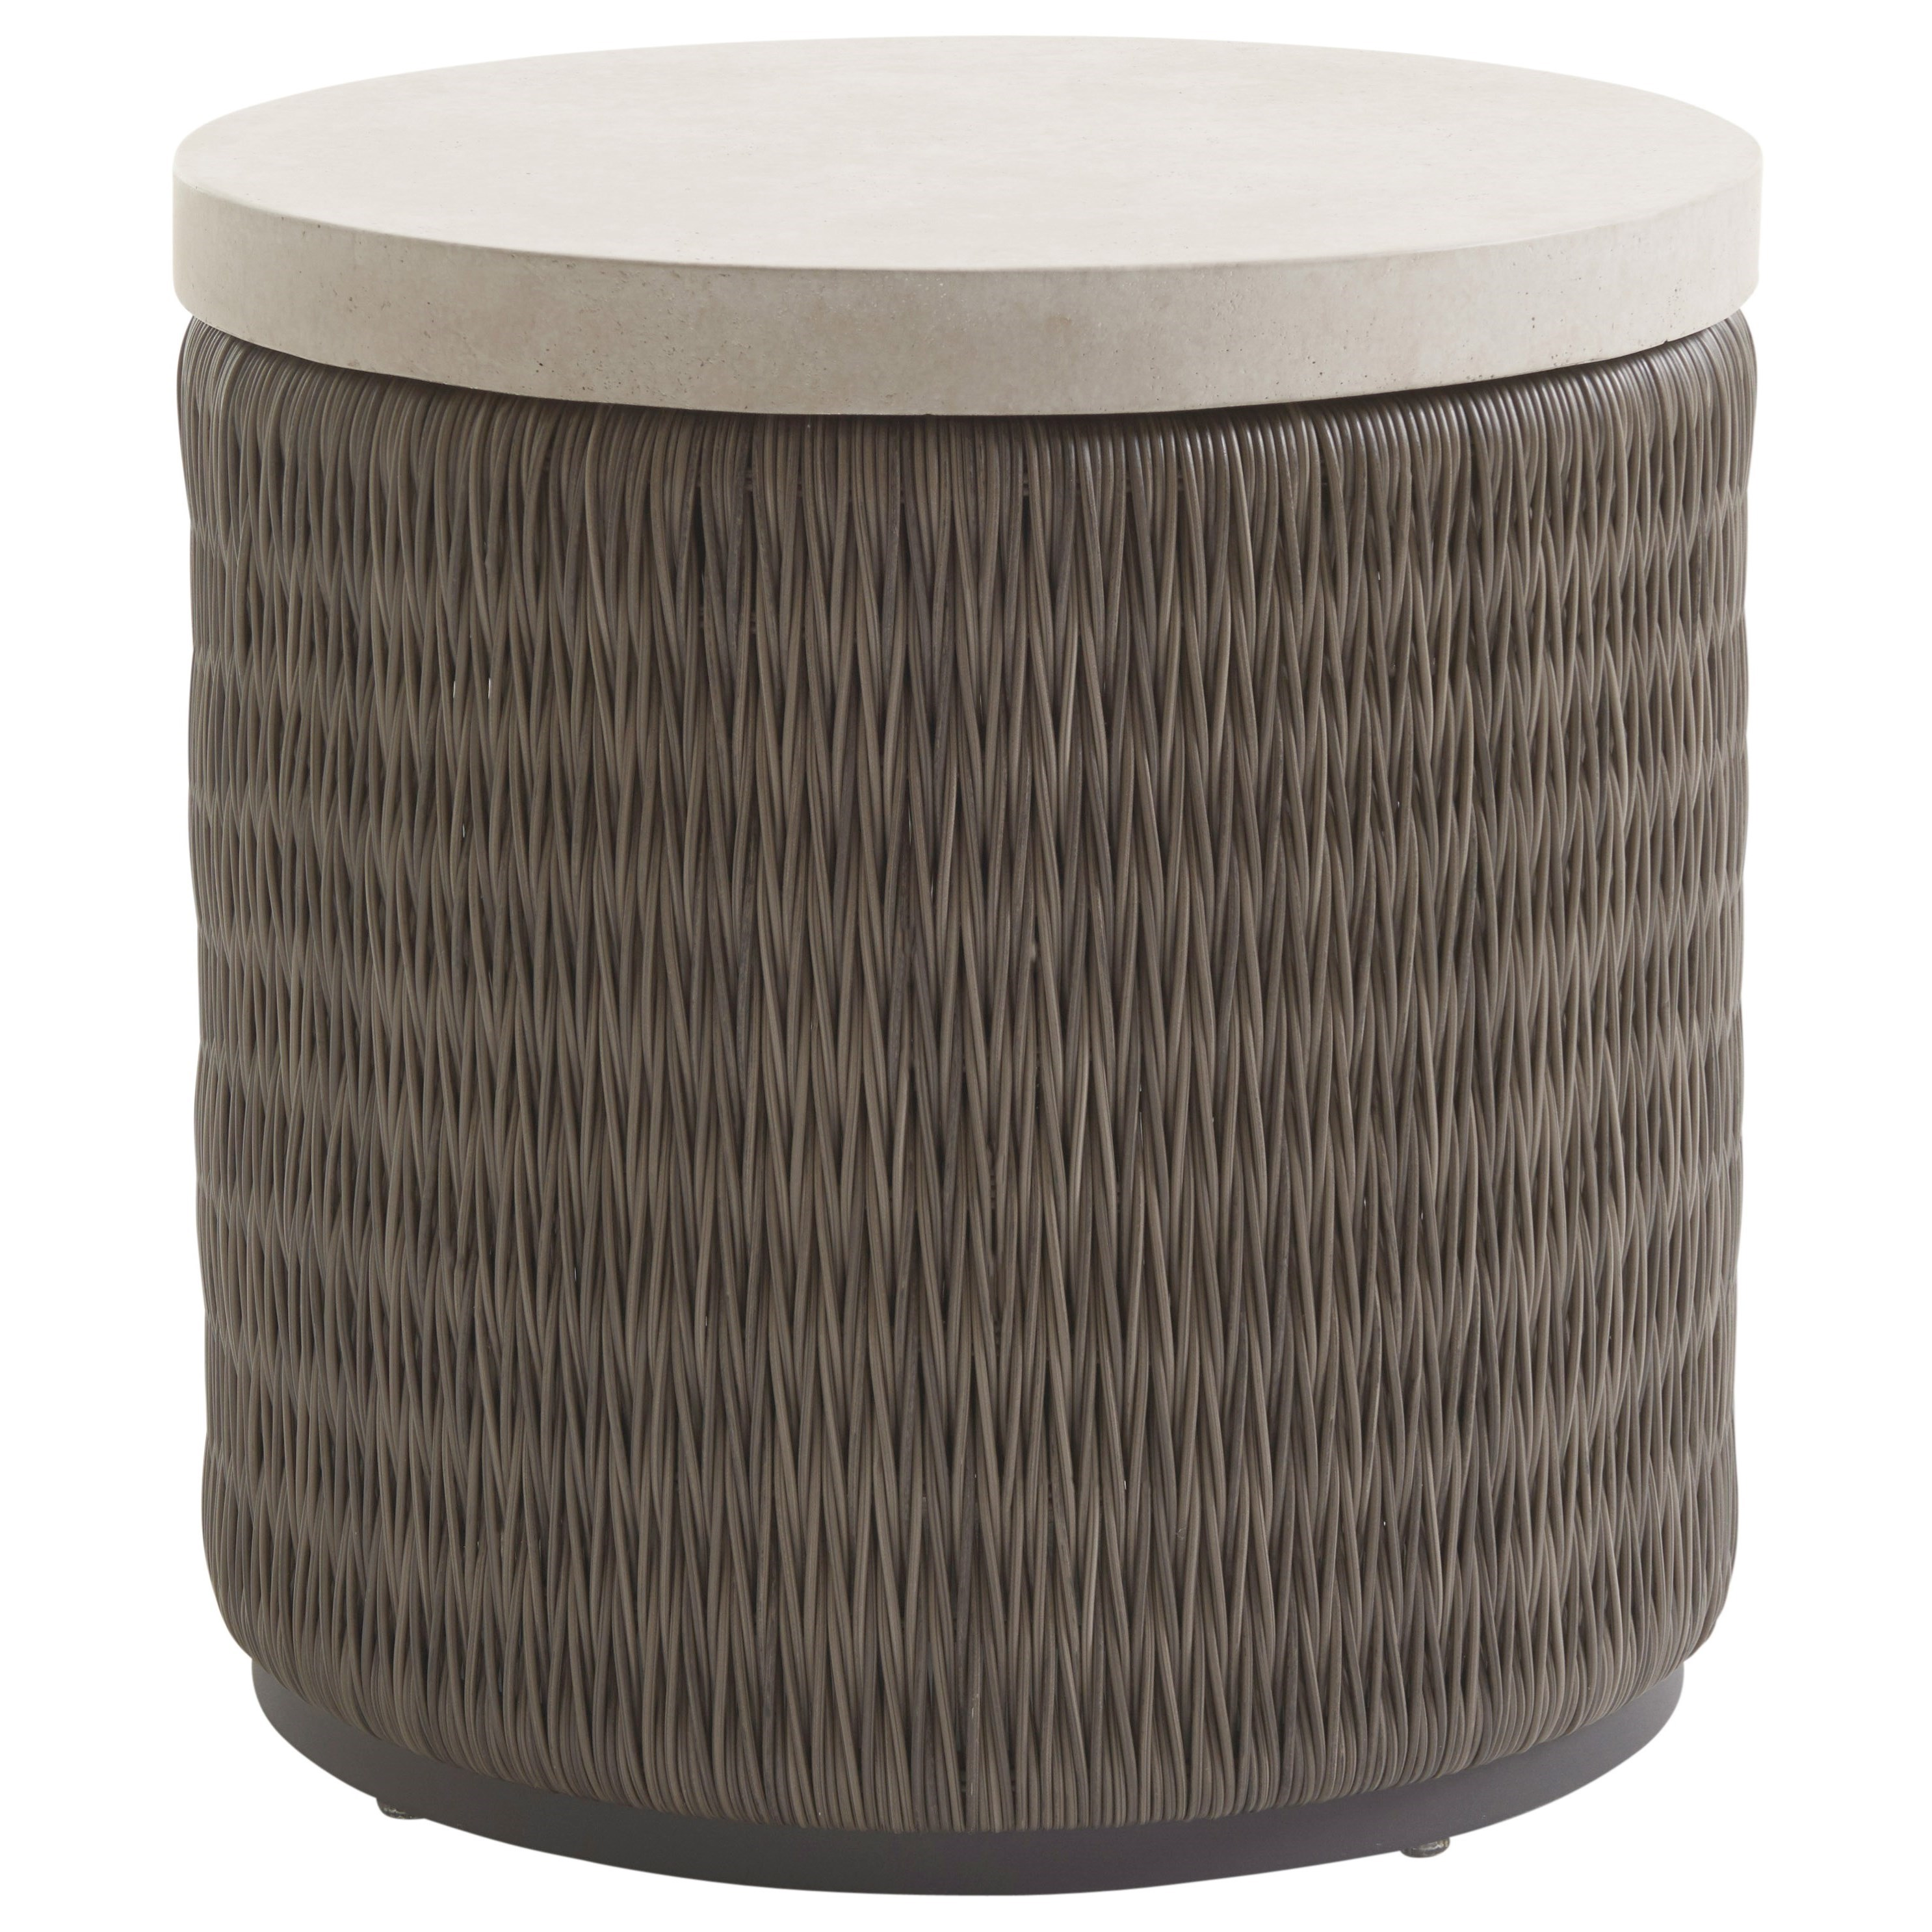 Cypress Point Ocean Terrace Outdoor End Table by Tommy Bahama Outdoor Living at C. S. Wo & Sons Hawaii